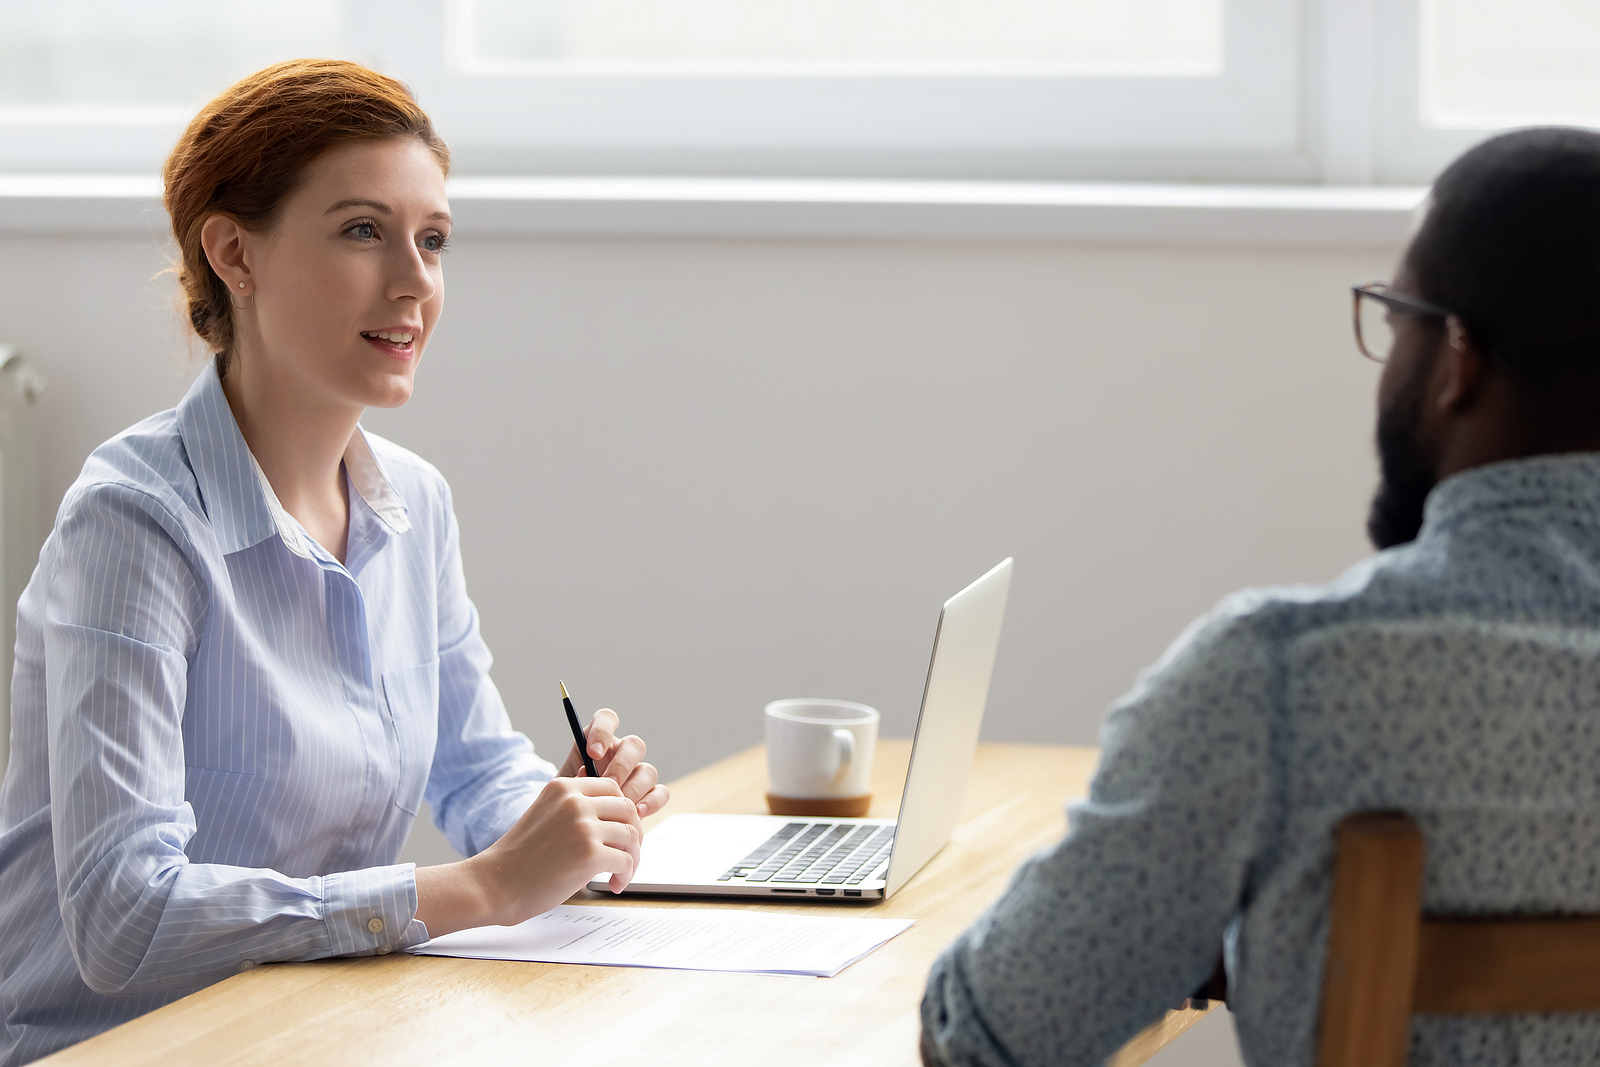 Taurean Consulting Group IT Recruiter preparing a job candidate for their job interview.